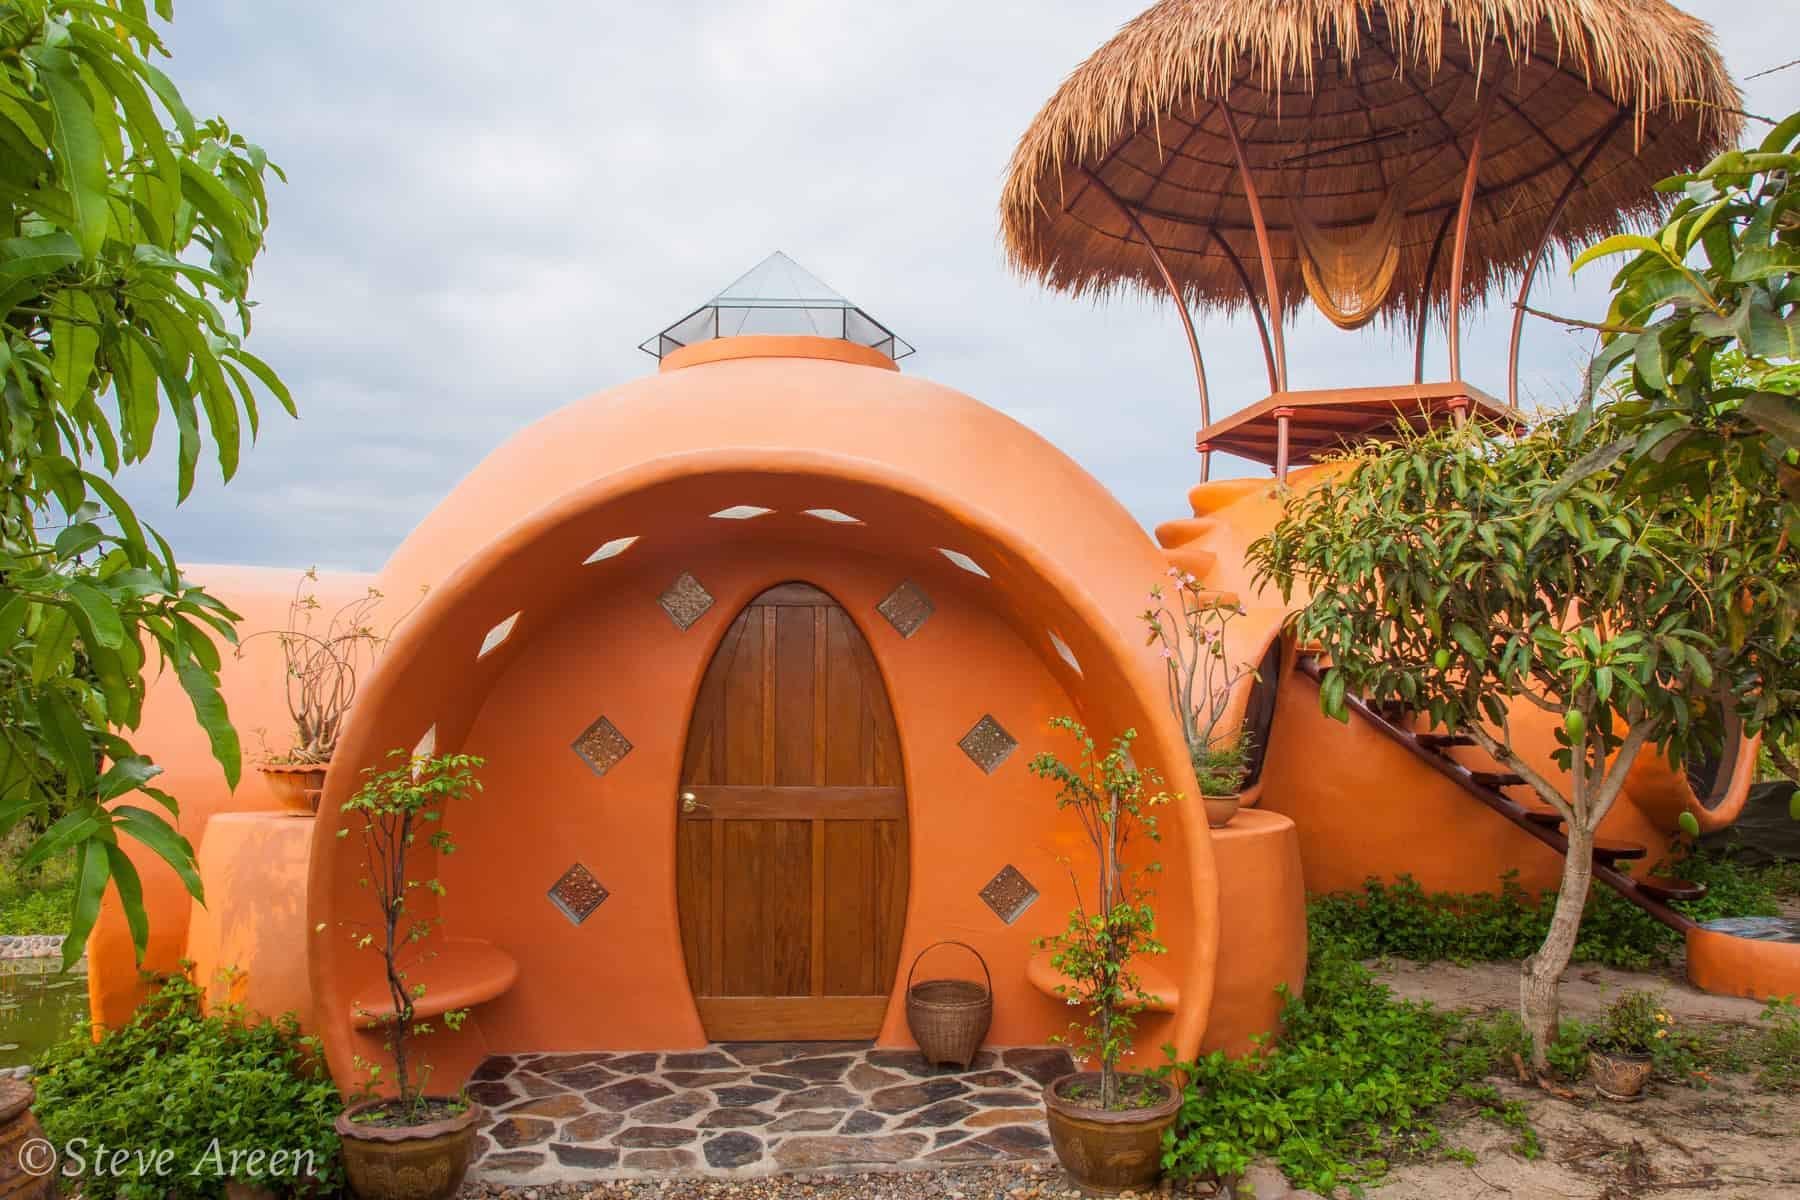 Steve Areen's Dome Home